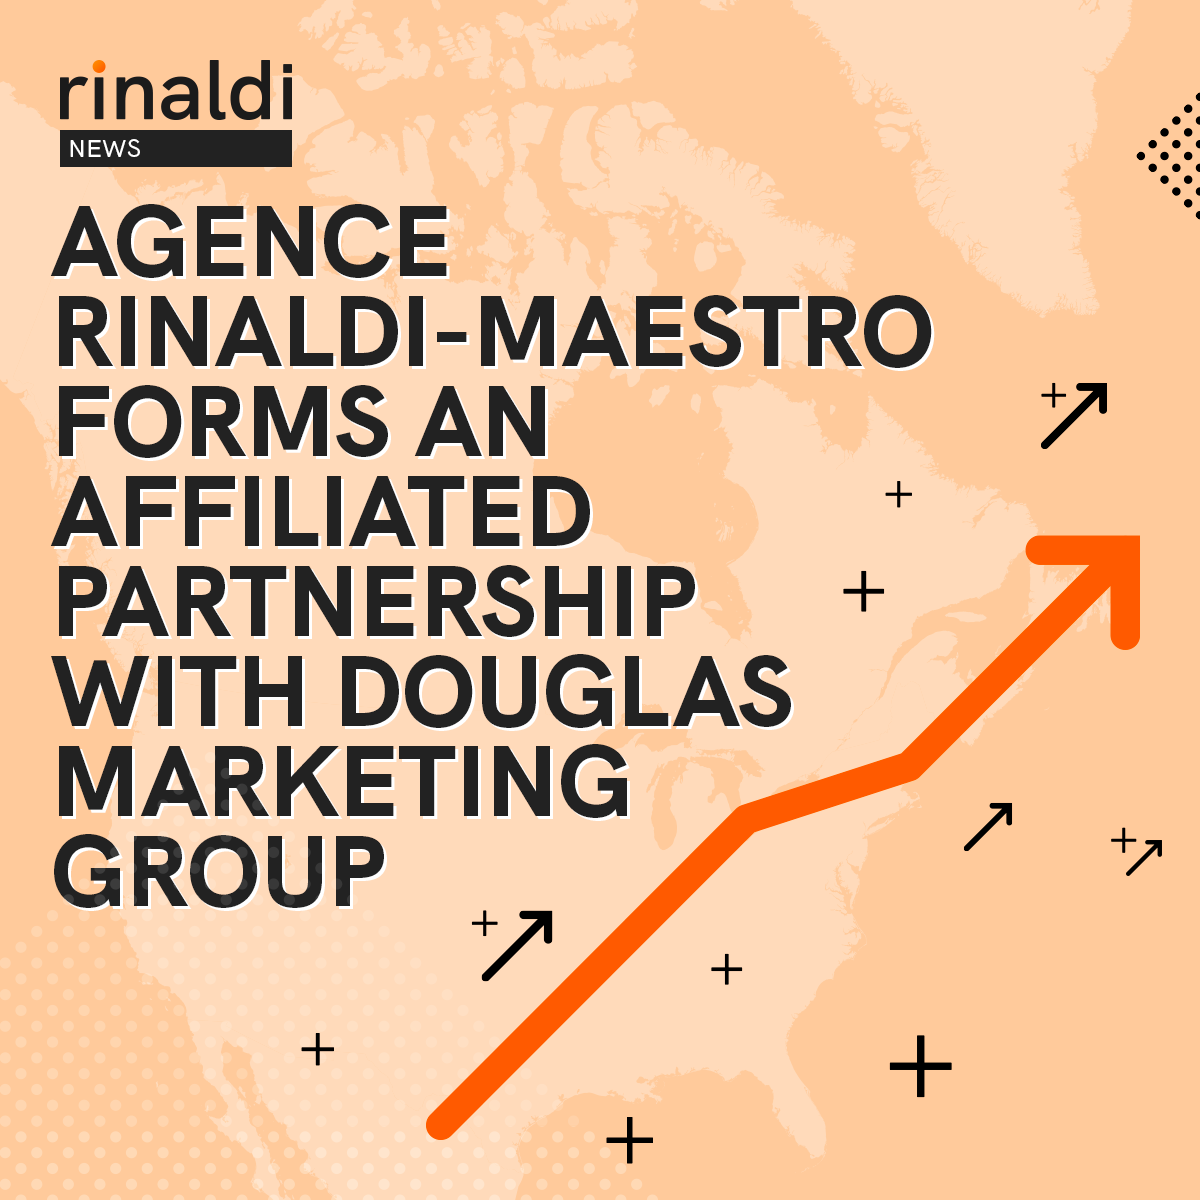 Agence Rinaldi-Maestro forms an affiliated partnership with Douglas Marketing Group